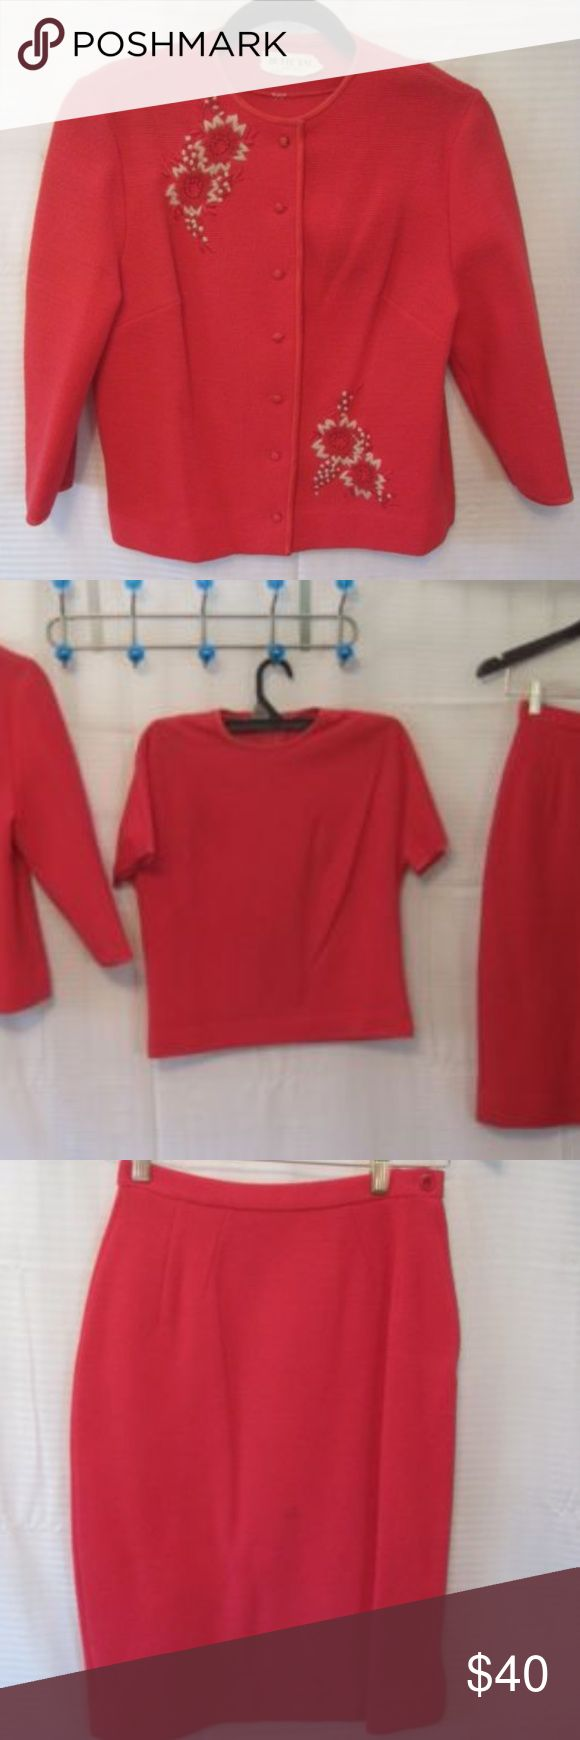 """Vintage Butte 3 pc Wool Knit Suit Top Skirt Coral Vintage Butte Knit 3 Pc Pink Floral Wool Sweater Top Skirt Set  Button front closure on sweater, Zipper back closure on short sleeve shirt, Side zipper and button closure on skirt.   There are some spots on skirt that may be able to be spot cleaned  Skirt: Length: 25"""", Waist: 24"""", Hips: 34""""  Sweater: Length: 22"""", Chest: 36"""", Sleeve: 10"""",  Waist: 36"""", Hips: 38""""  Shirt:Length: 20"""", Chest: 36"""", Sleeve: 1 1/2"""", Waist: 32"""", Hips: 34"""" Butte Dresses"""